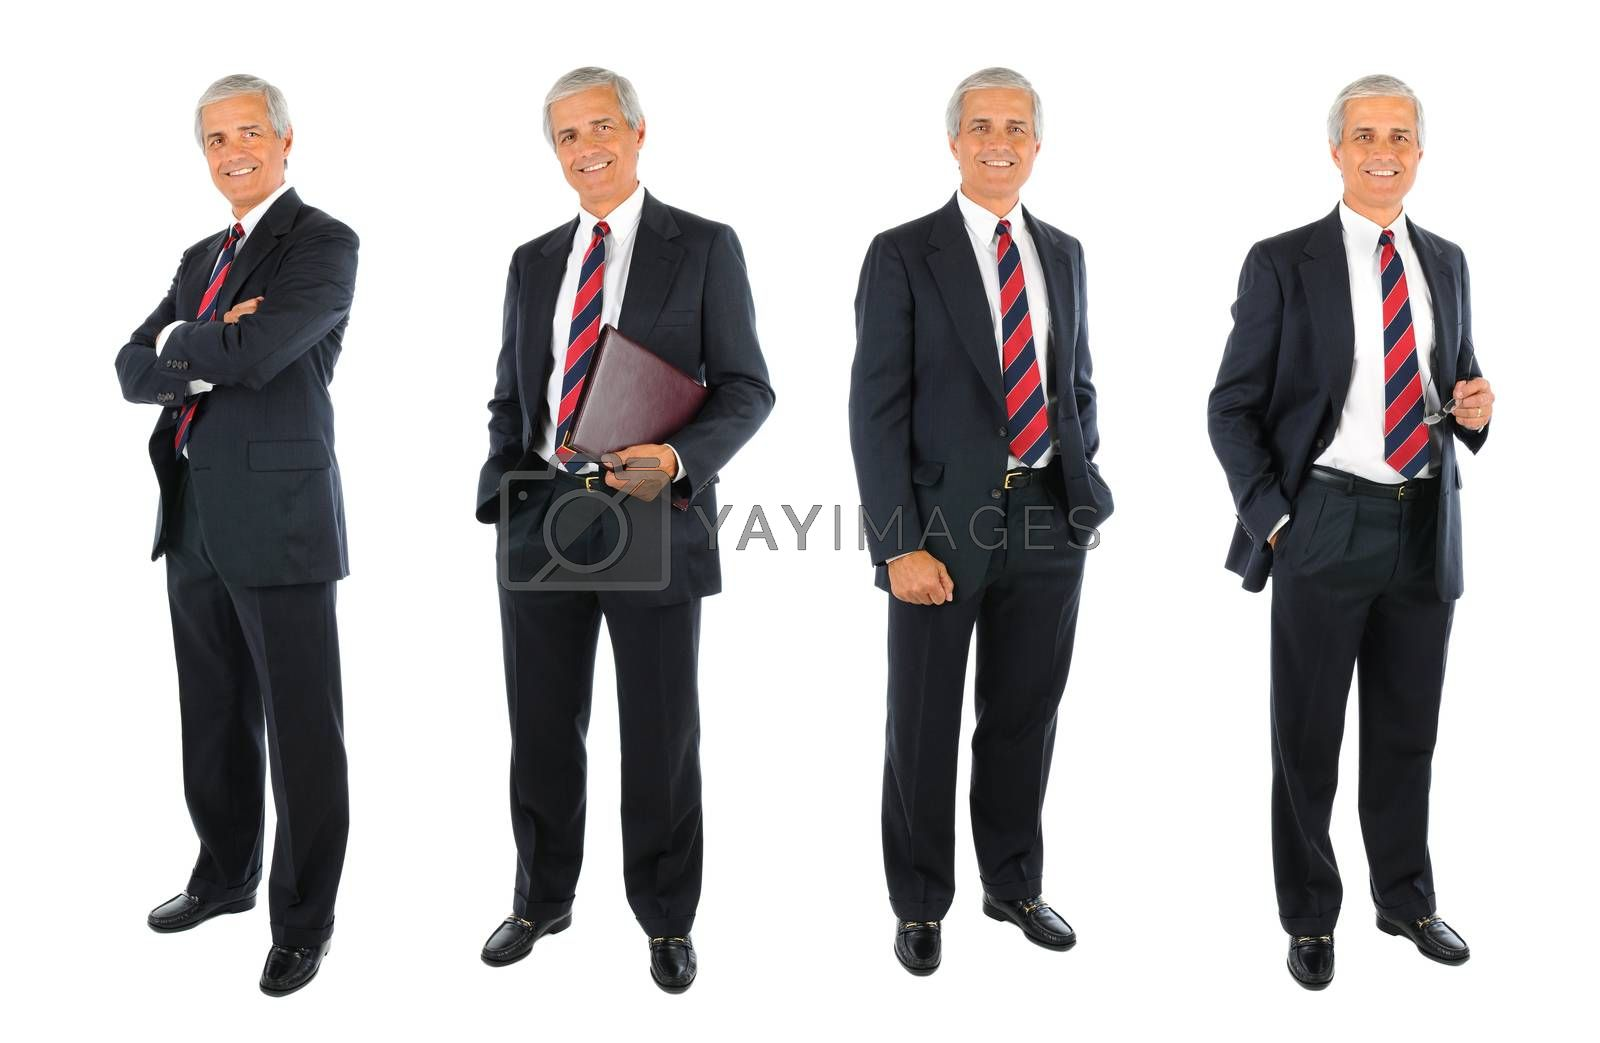 Mature Businessman collage. four Full length images with different poses over a white background.